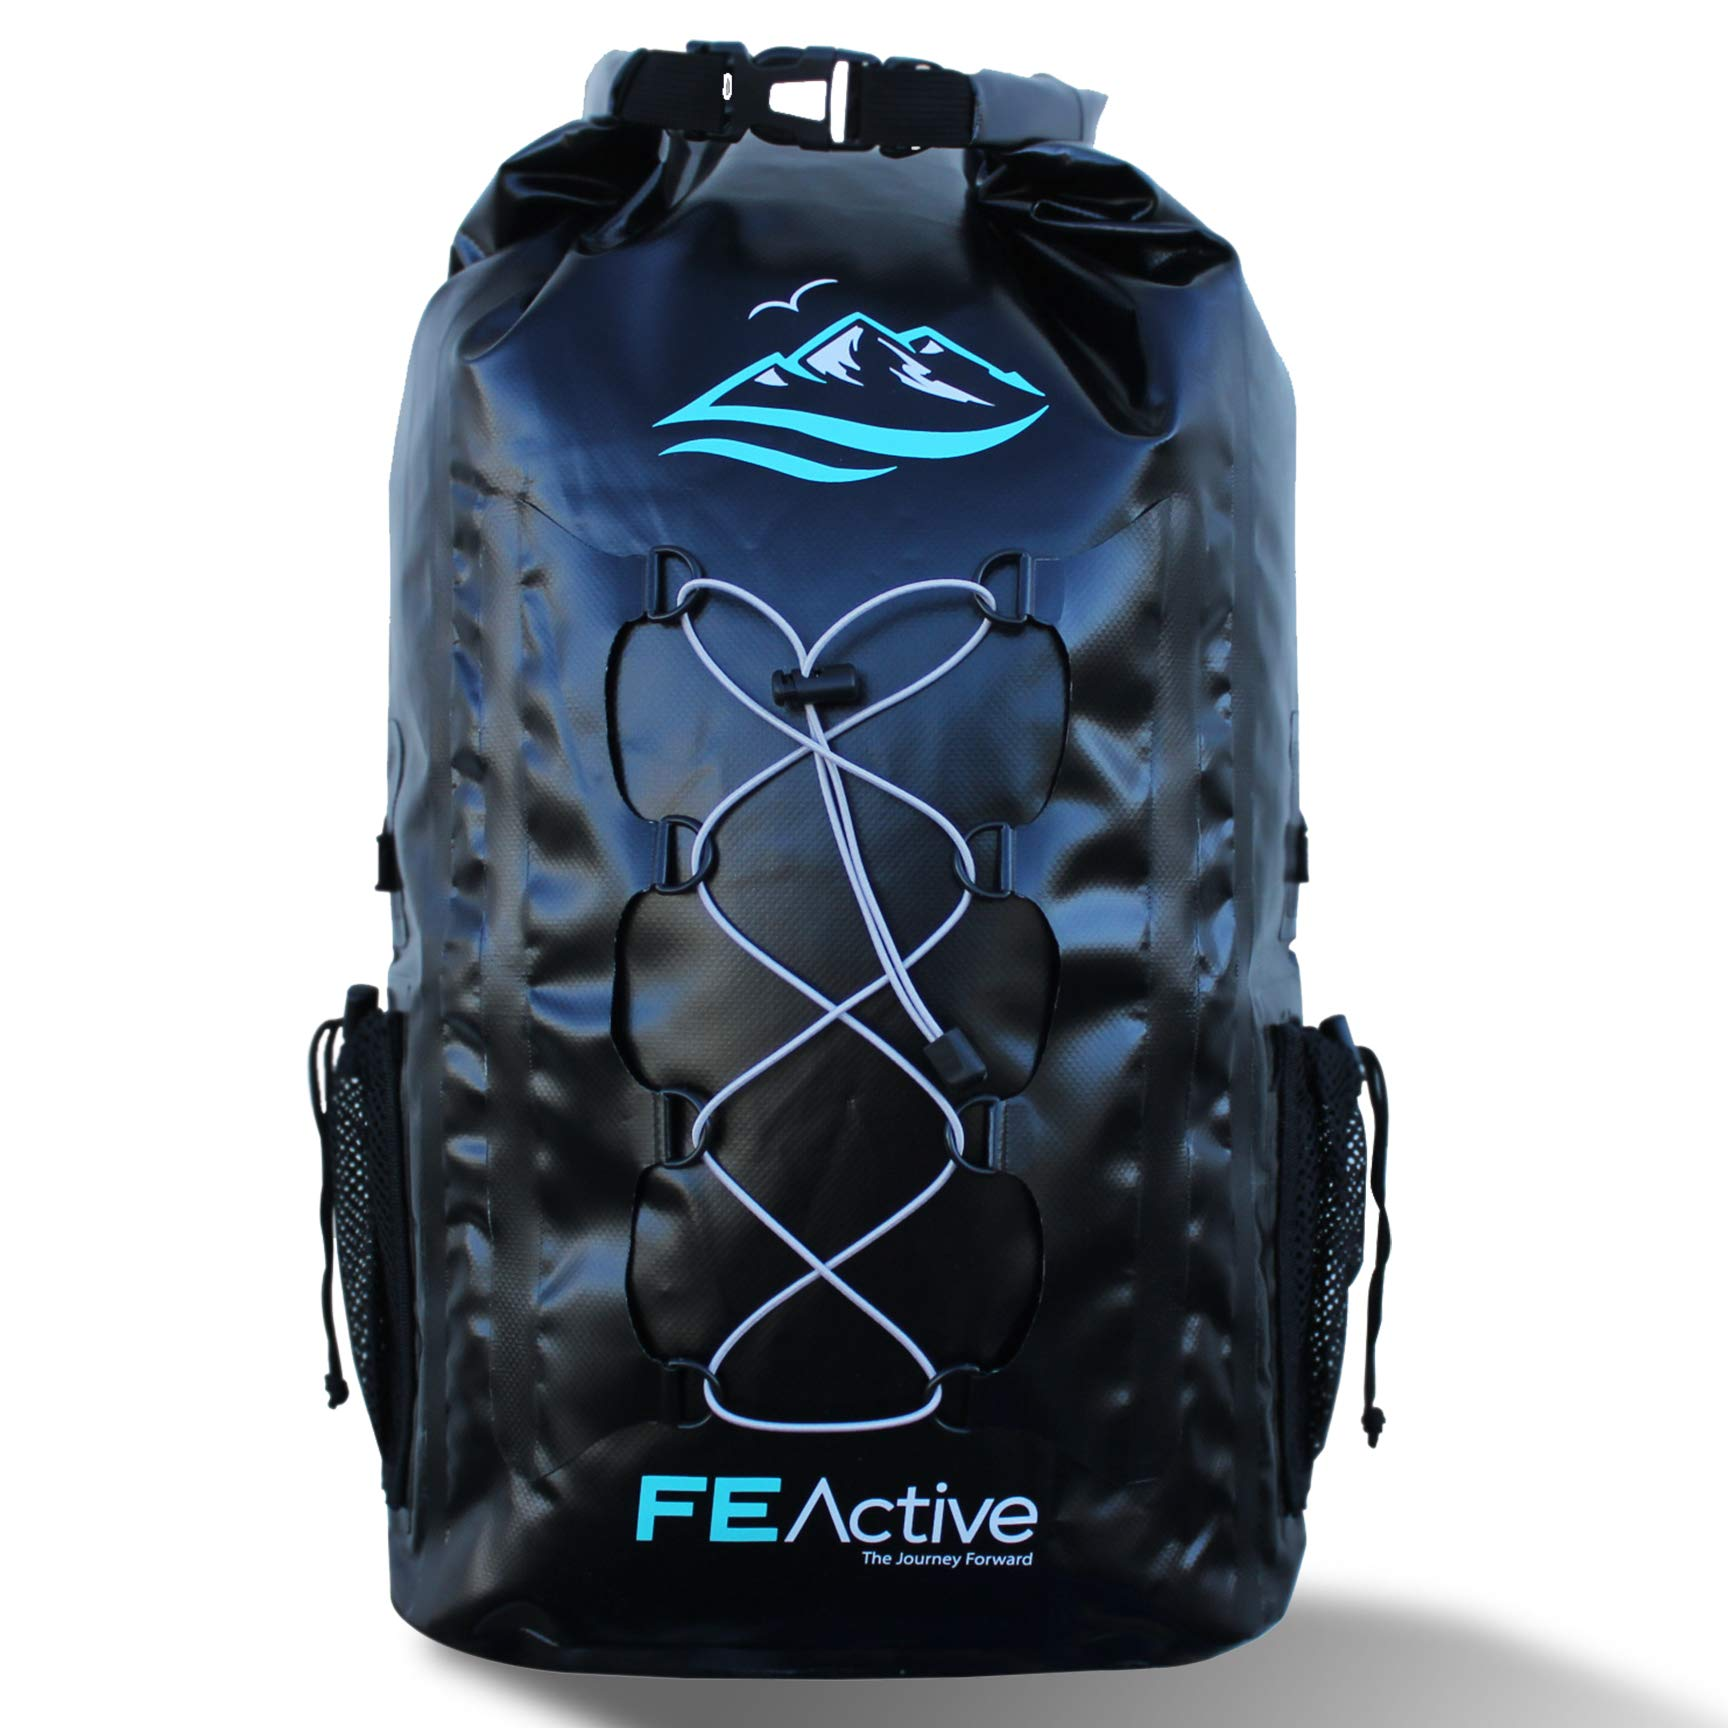 FE Active - 30L Eco Friendly Waterproof Dry Bag Backpack Great for All Outdoor and Water Related Activities. Padded Shoulder Straps, Corded Exterior and Mesh Netting for Increased Carrying Capacity by FE Active